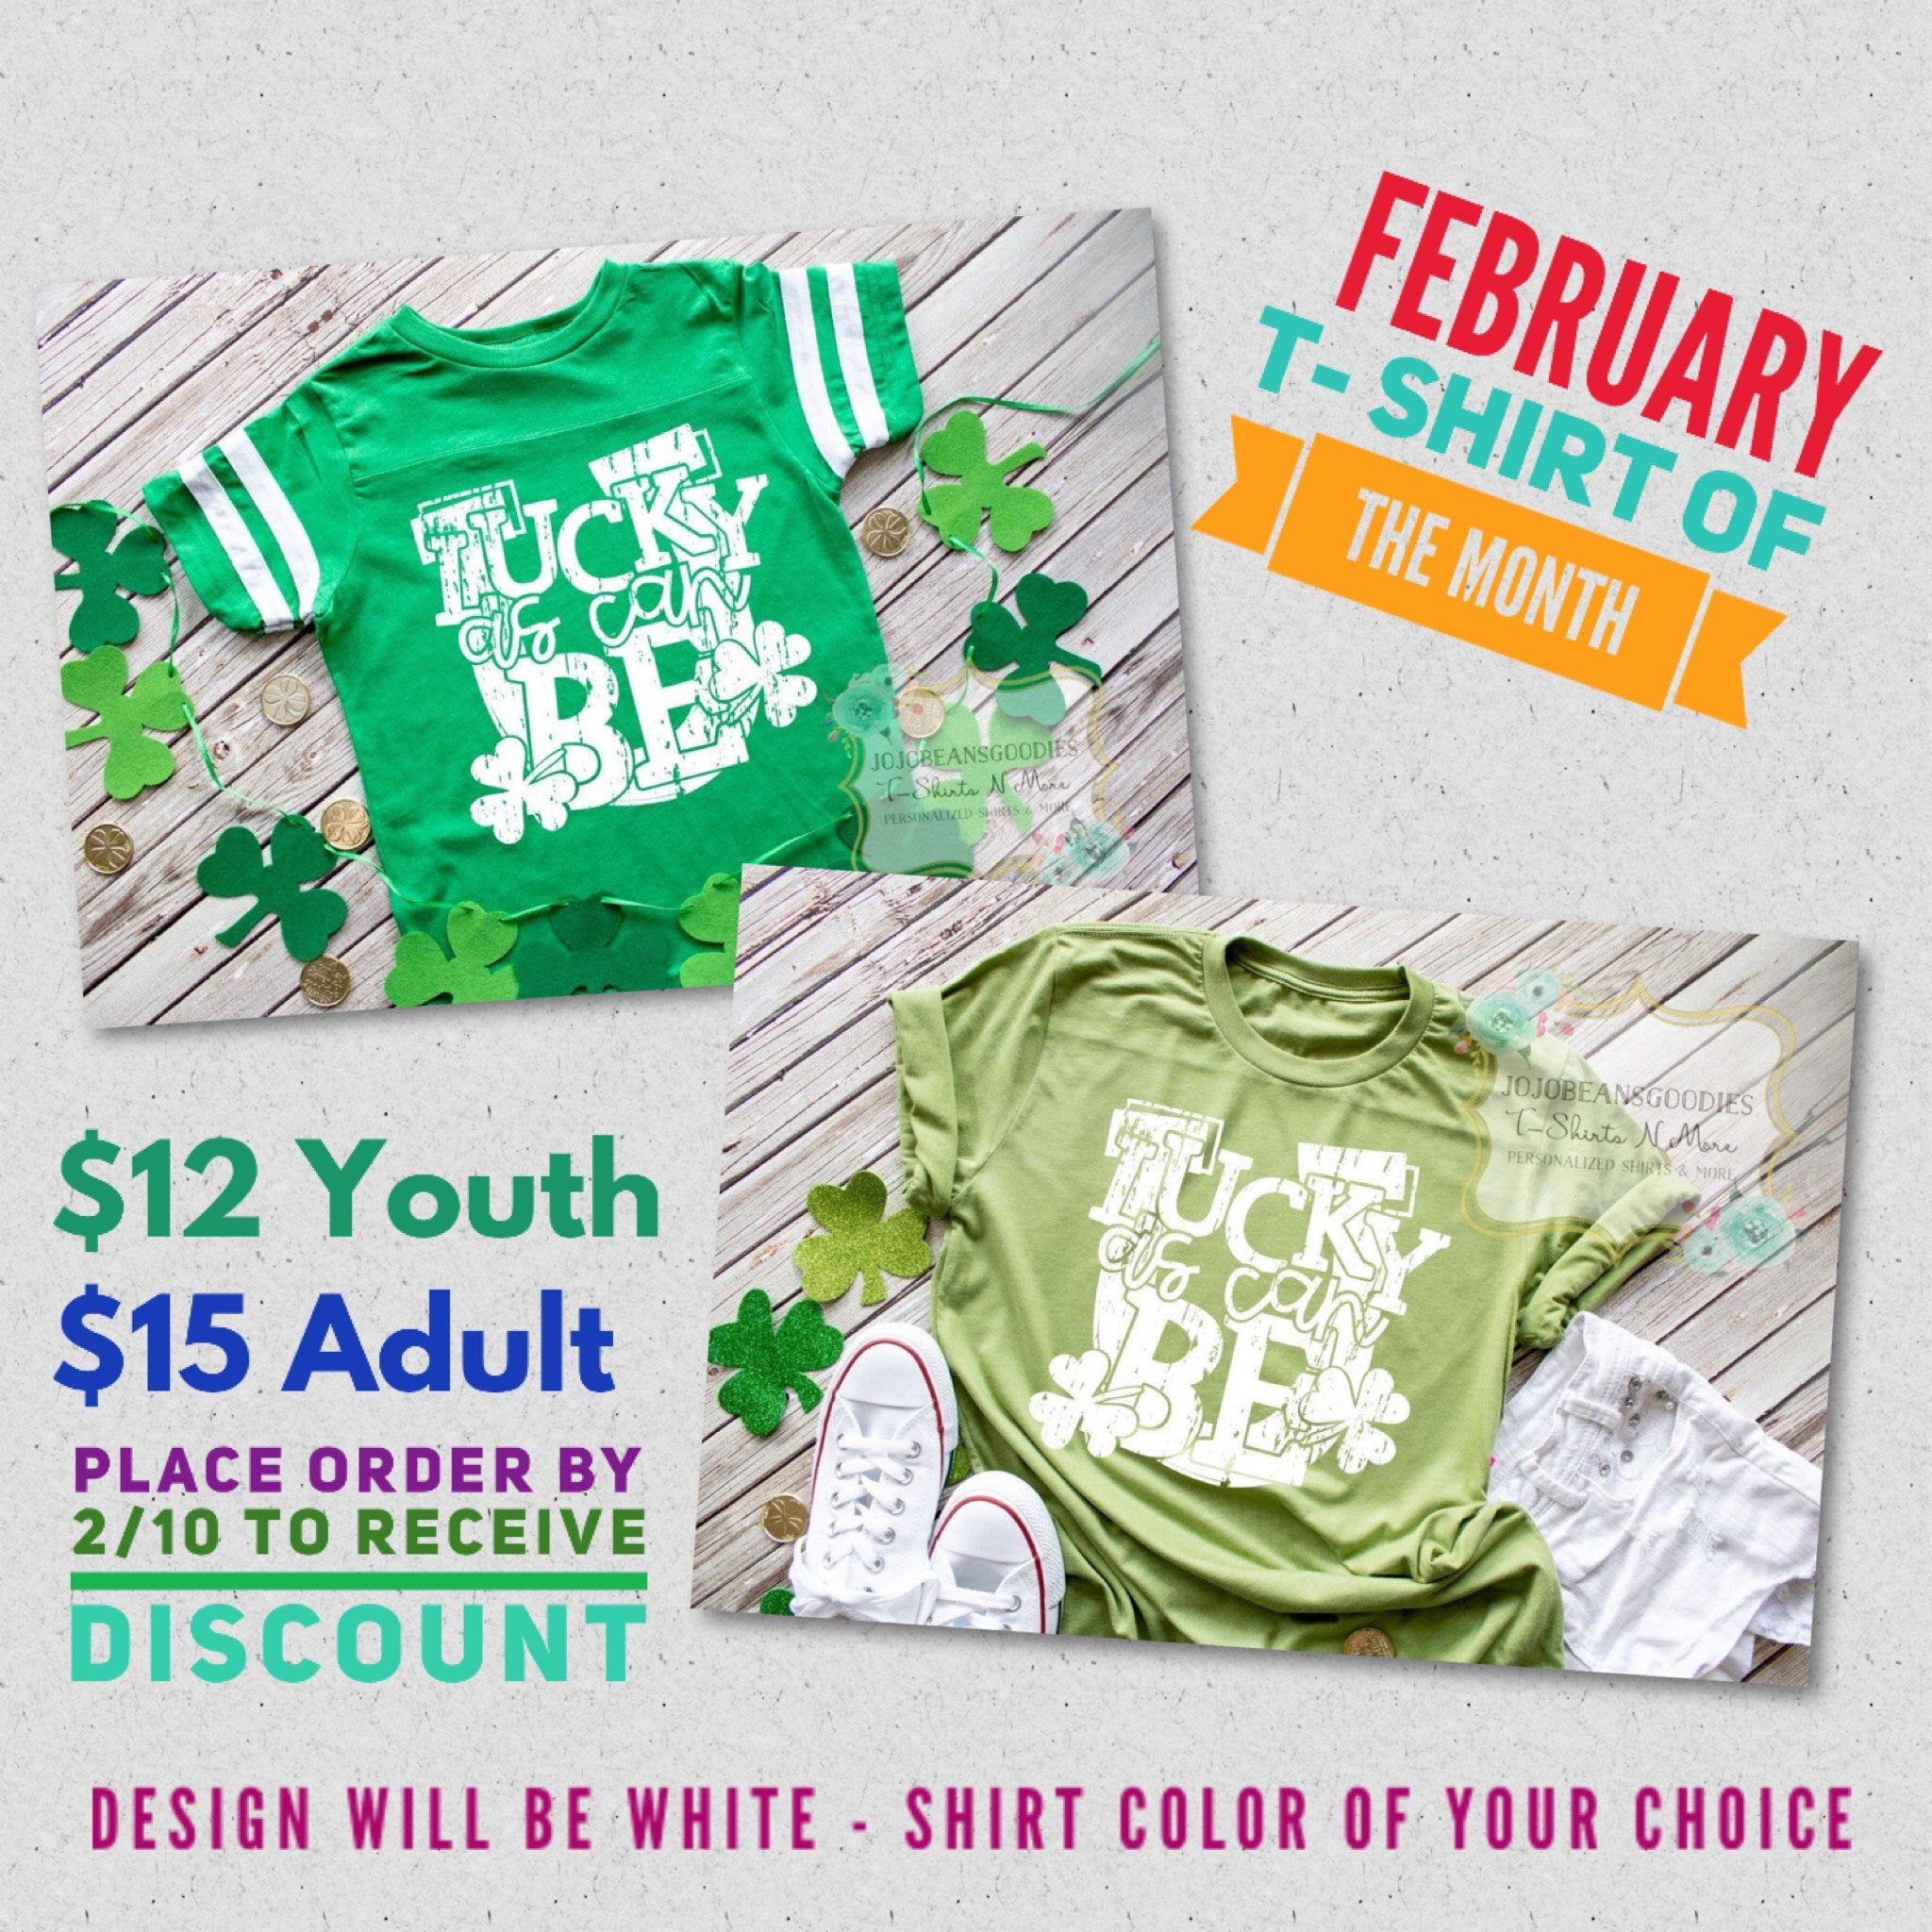 February TShirt of the Month, Shirt of the Month, Lucky